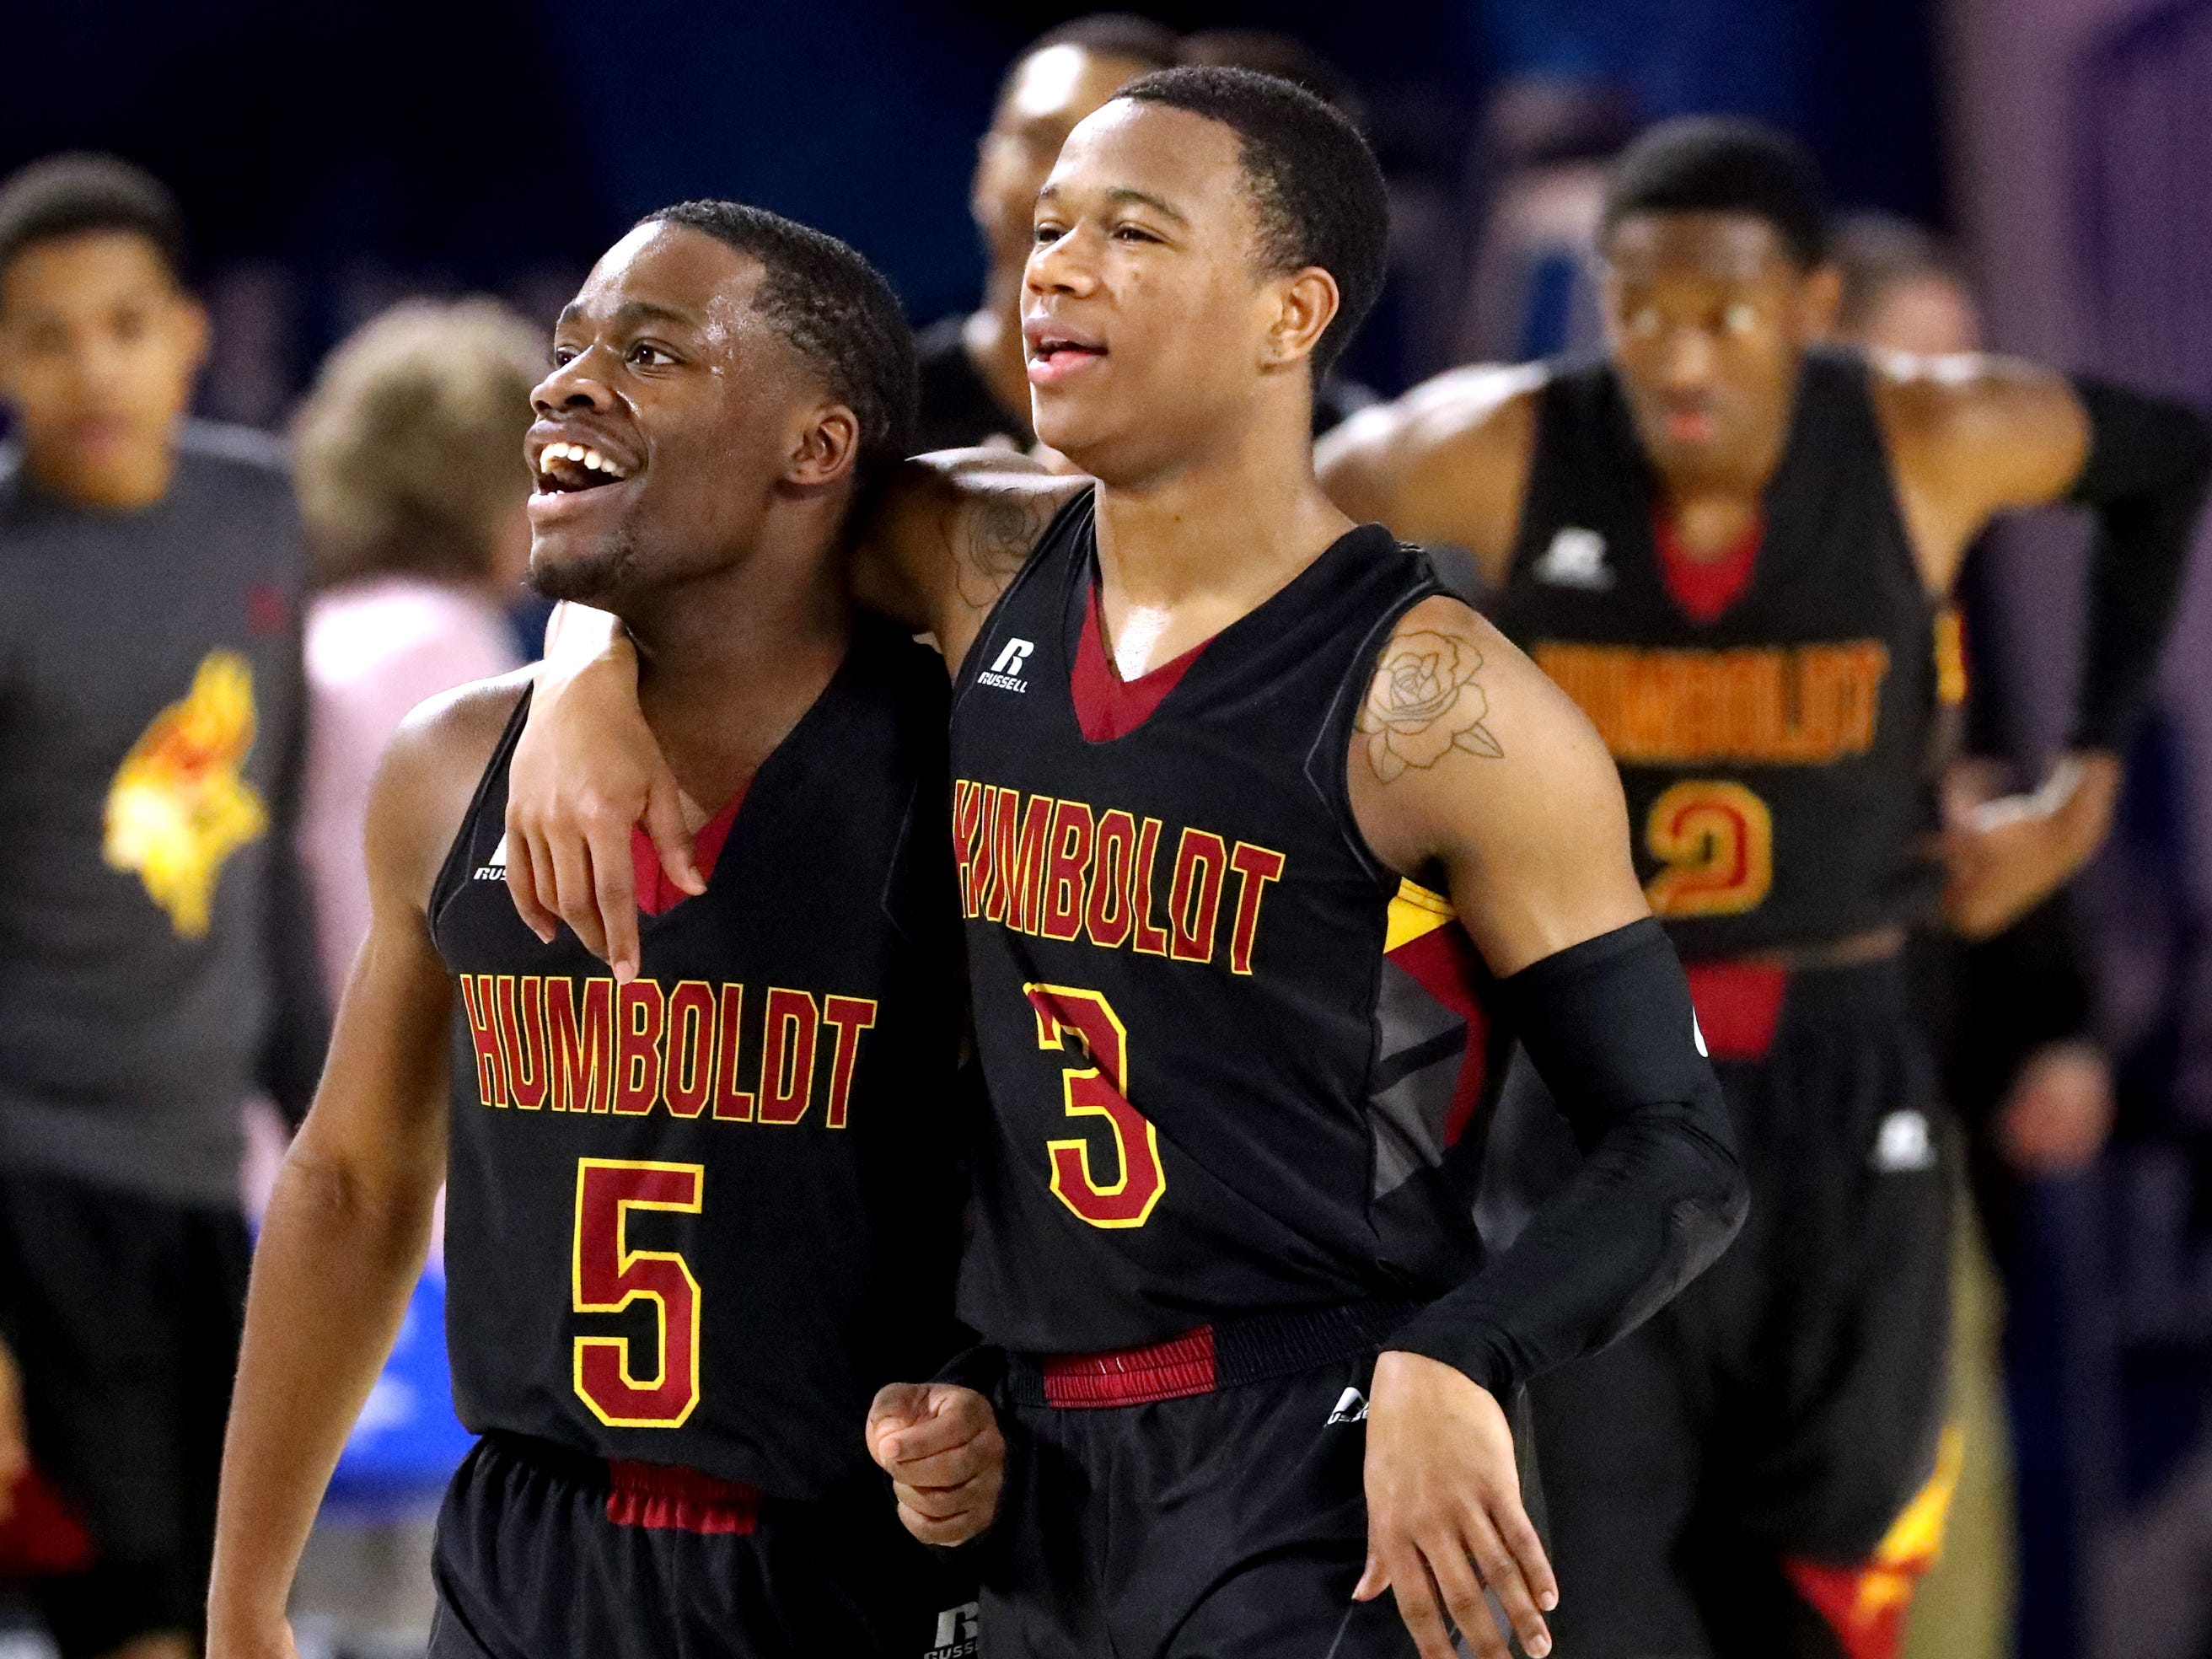 Humboldt's Montrez Ward (5) and Humboldt's Trent Green (3) celebrate beating McKenzie 66-55 in the semifinal round of the TSSAA Class A Boys State Tournament, on Thursday, March 15, 2019, at Murphy Center in Murfreesboro, Tenn.